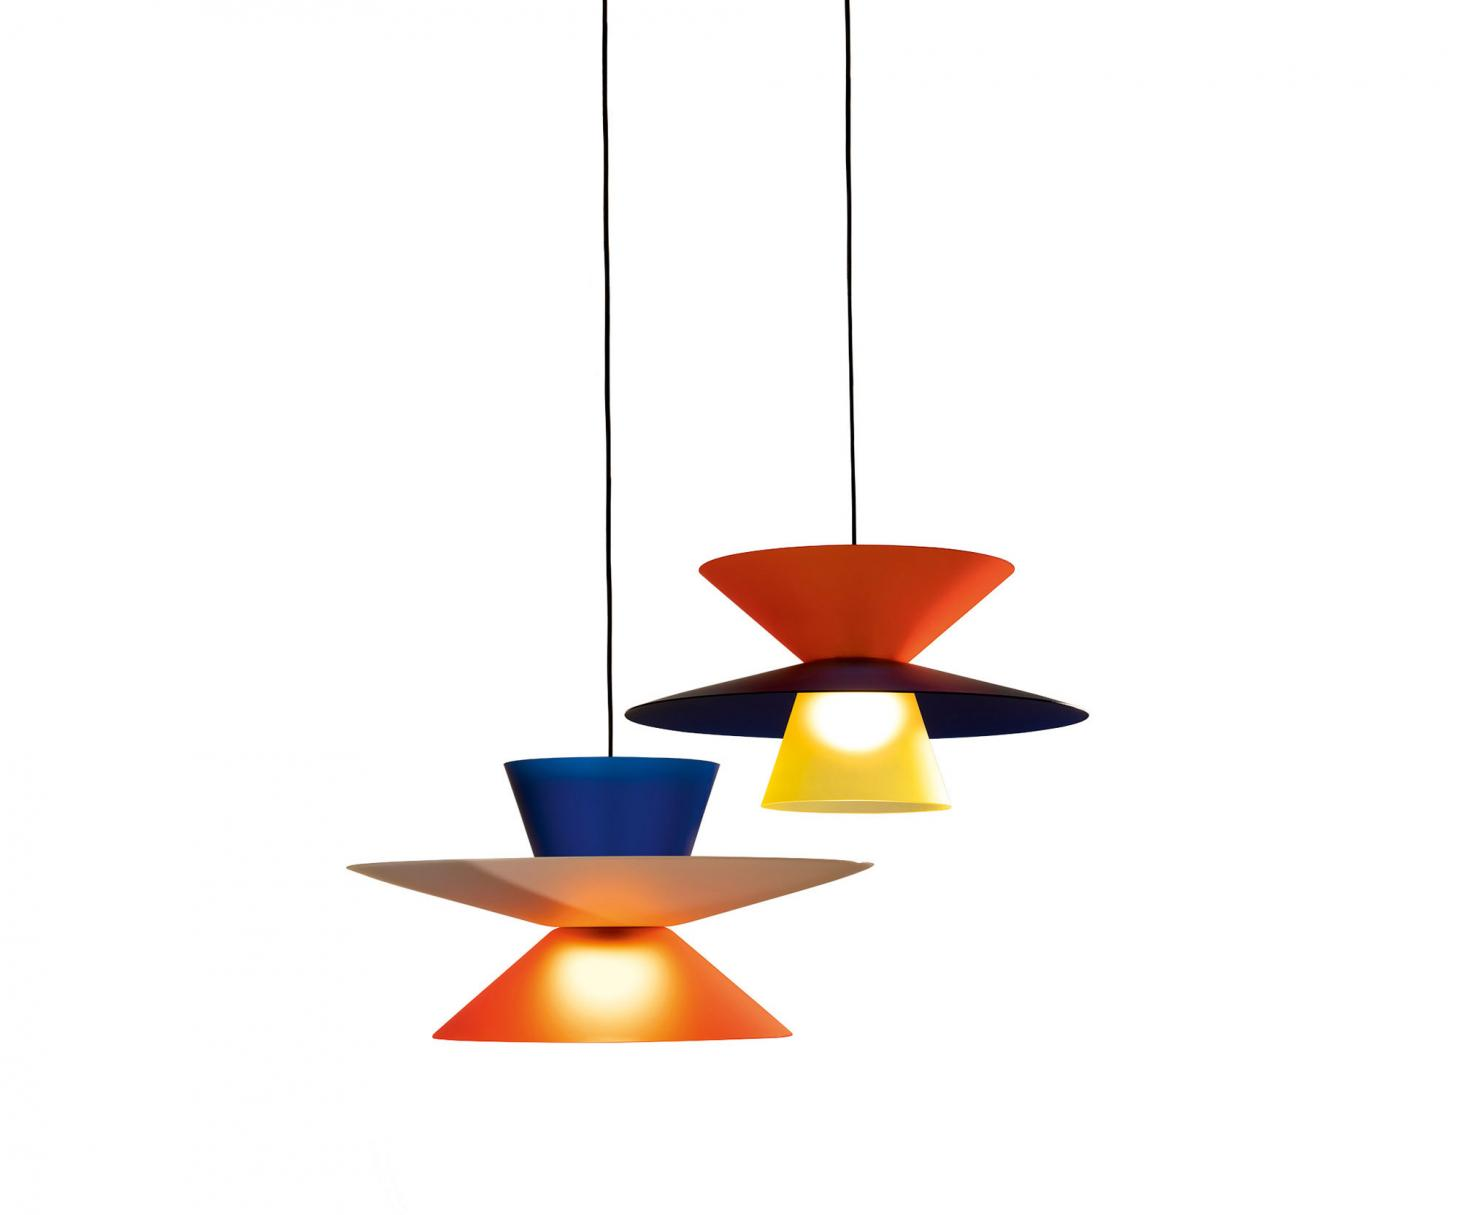 Two outdoor pendant lamps with colourful shades in orange and blue, and red and black